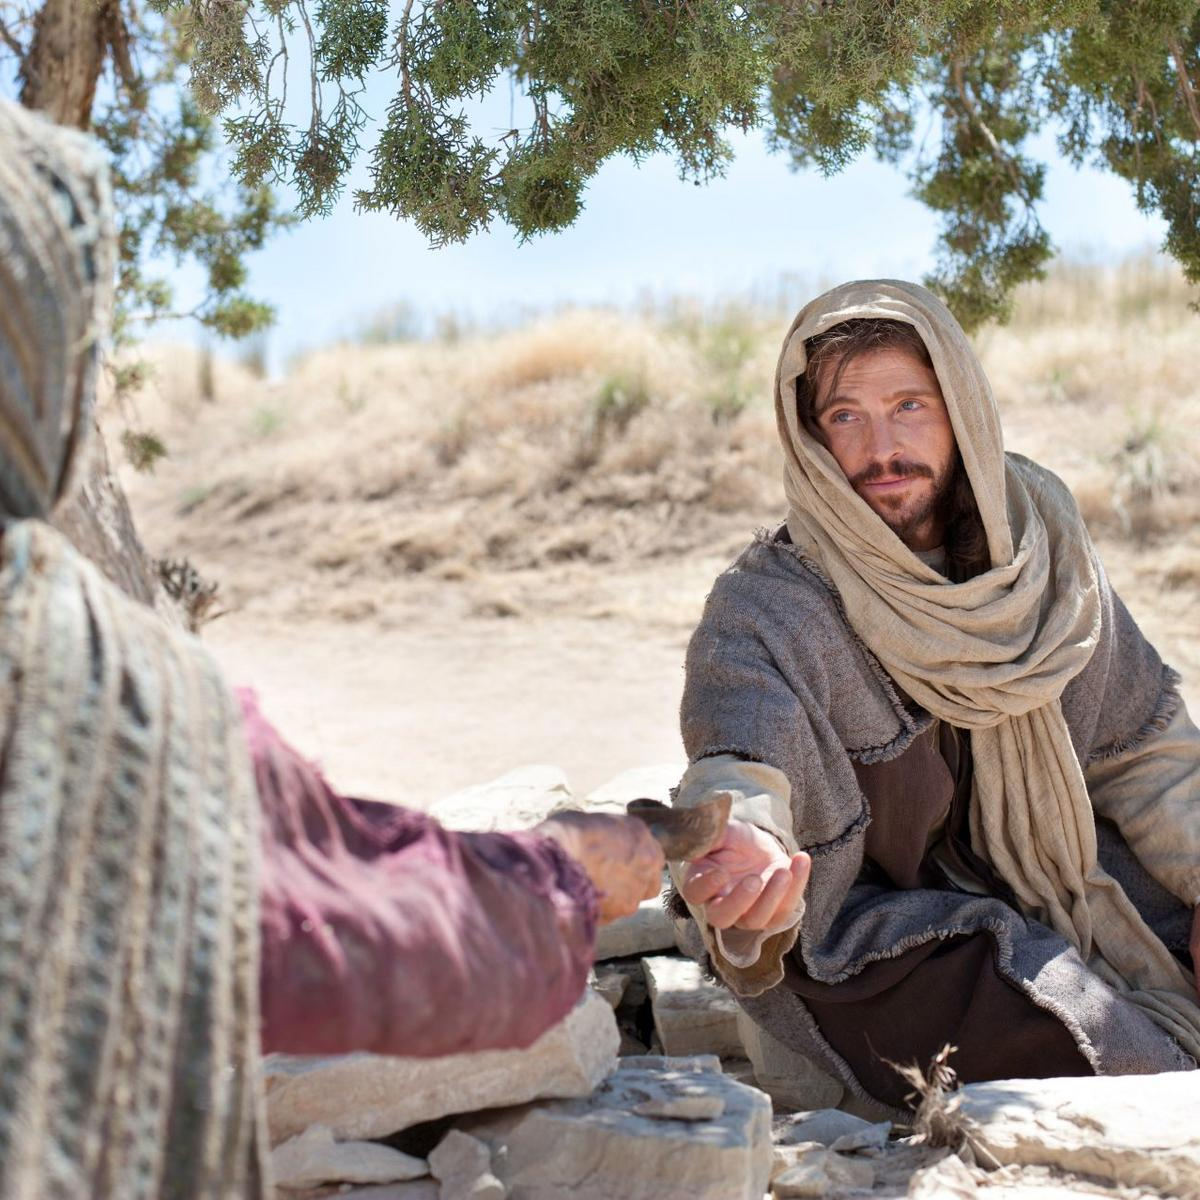 Woman Offers Water to Christ